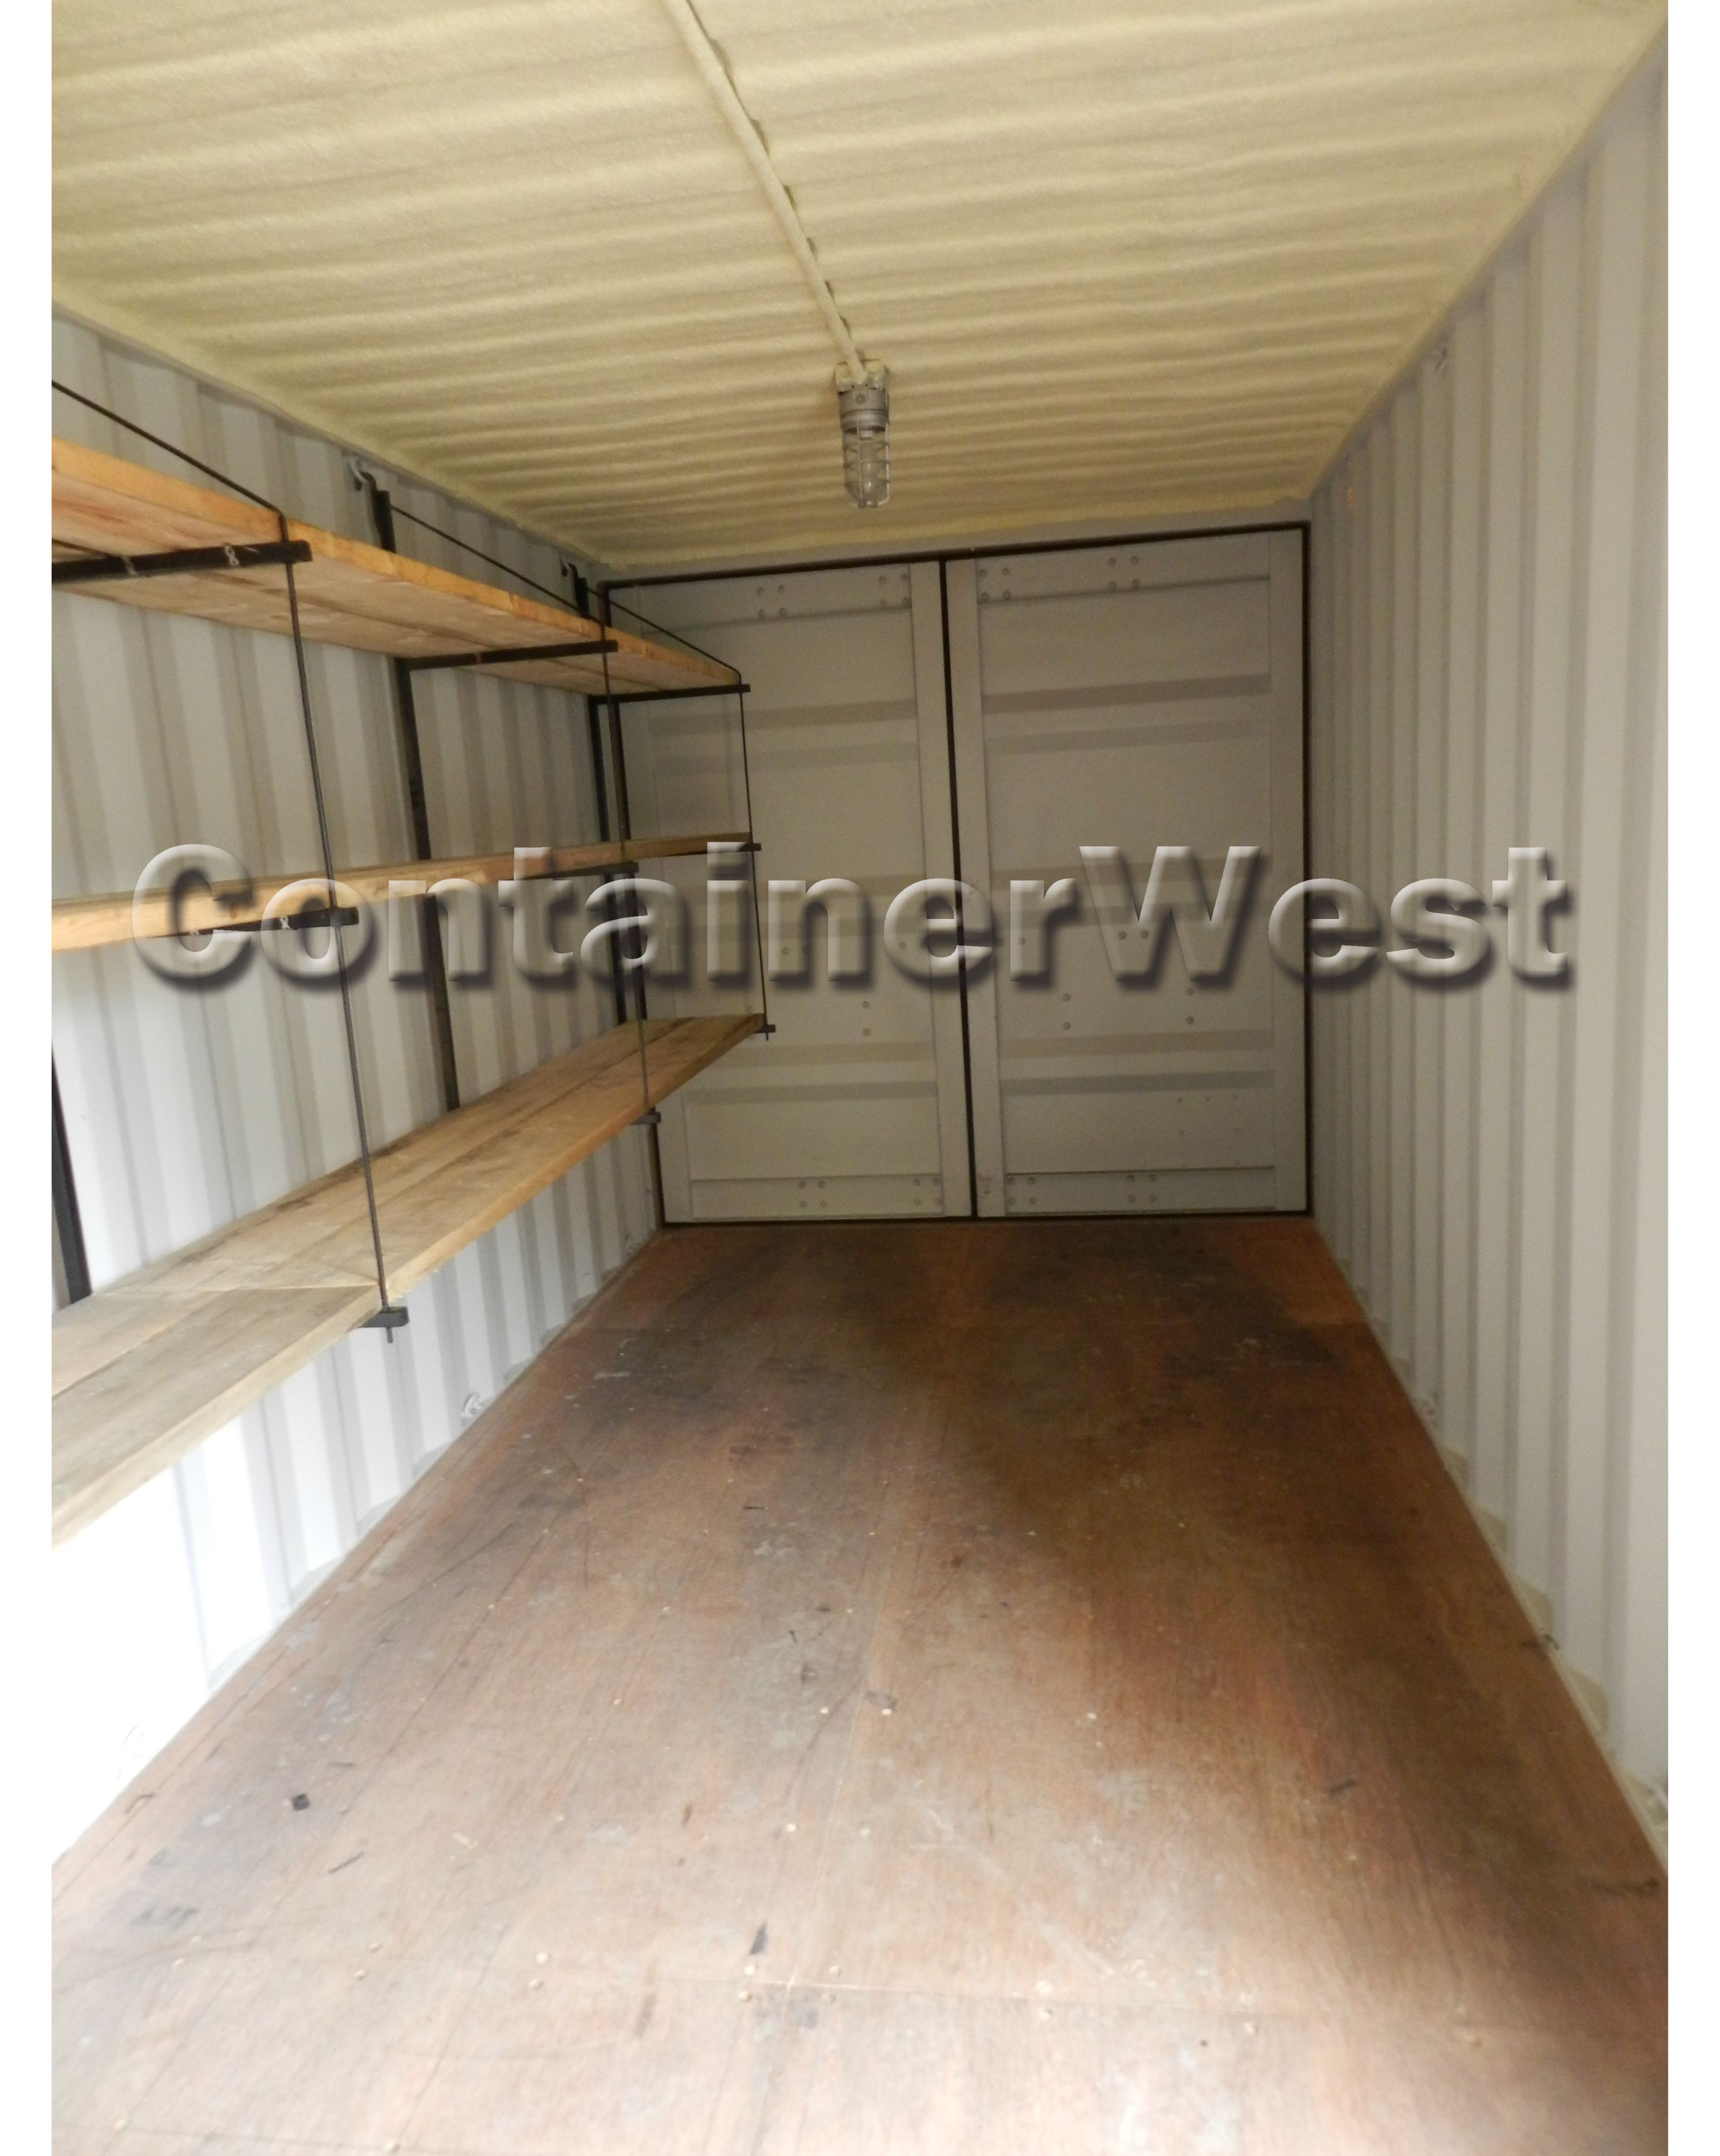 At home storage container rental